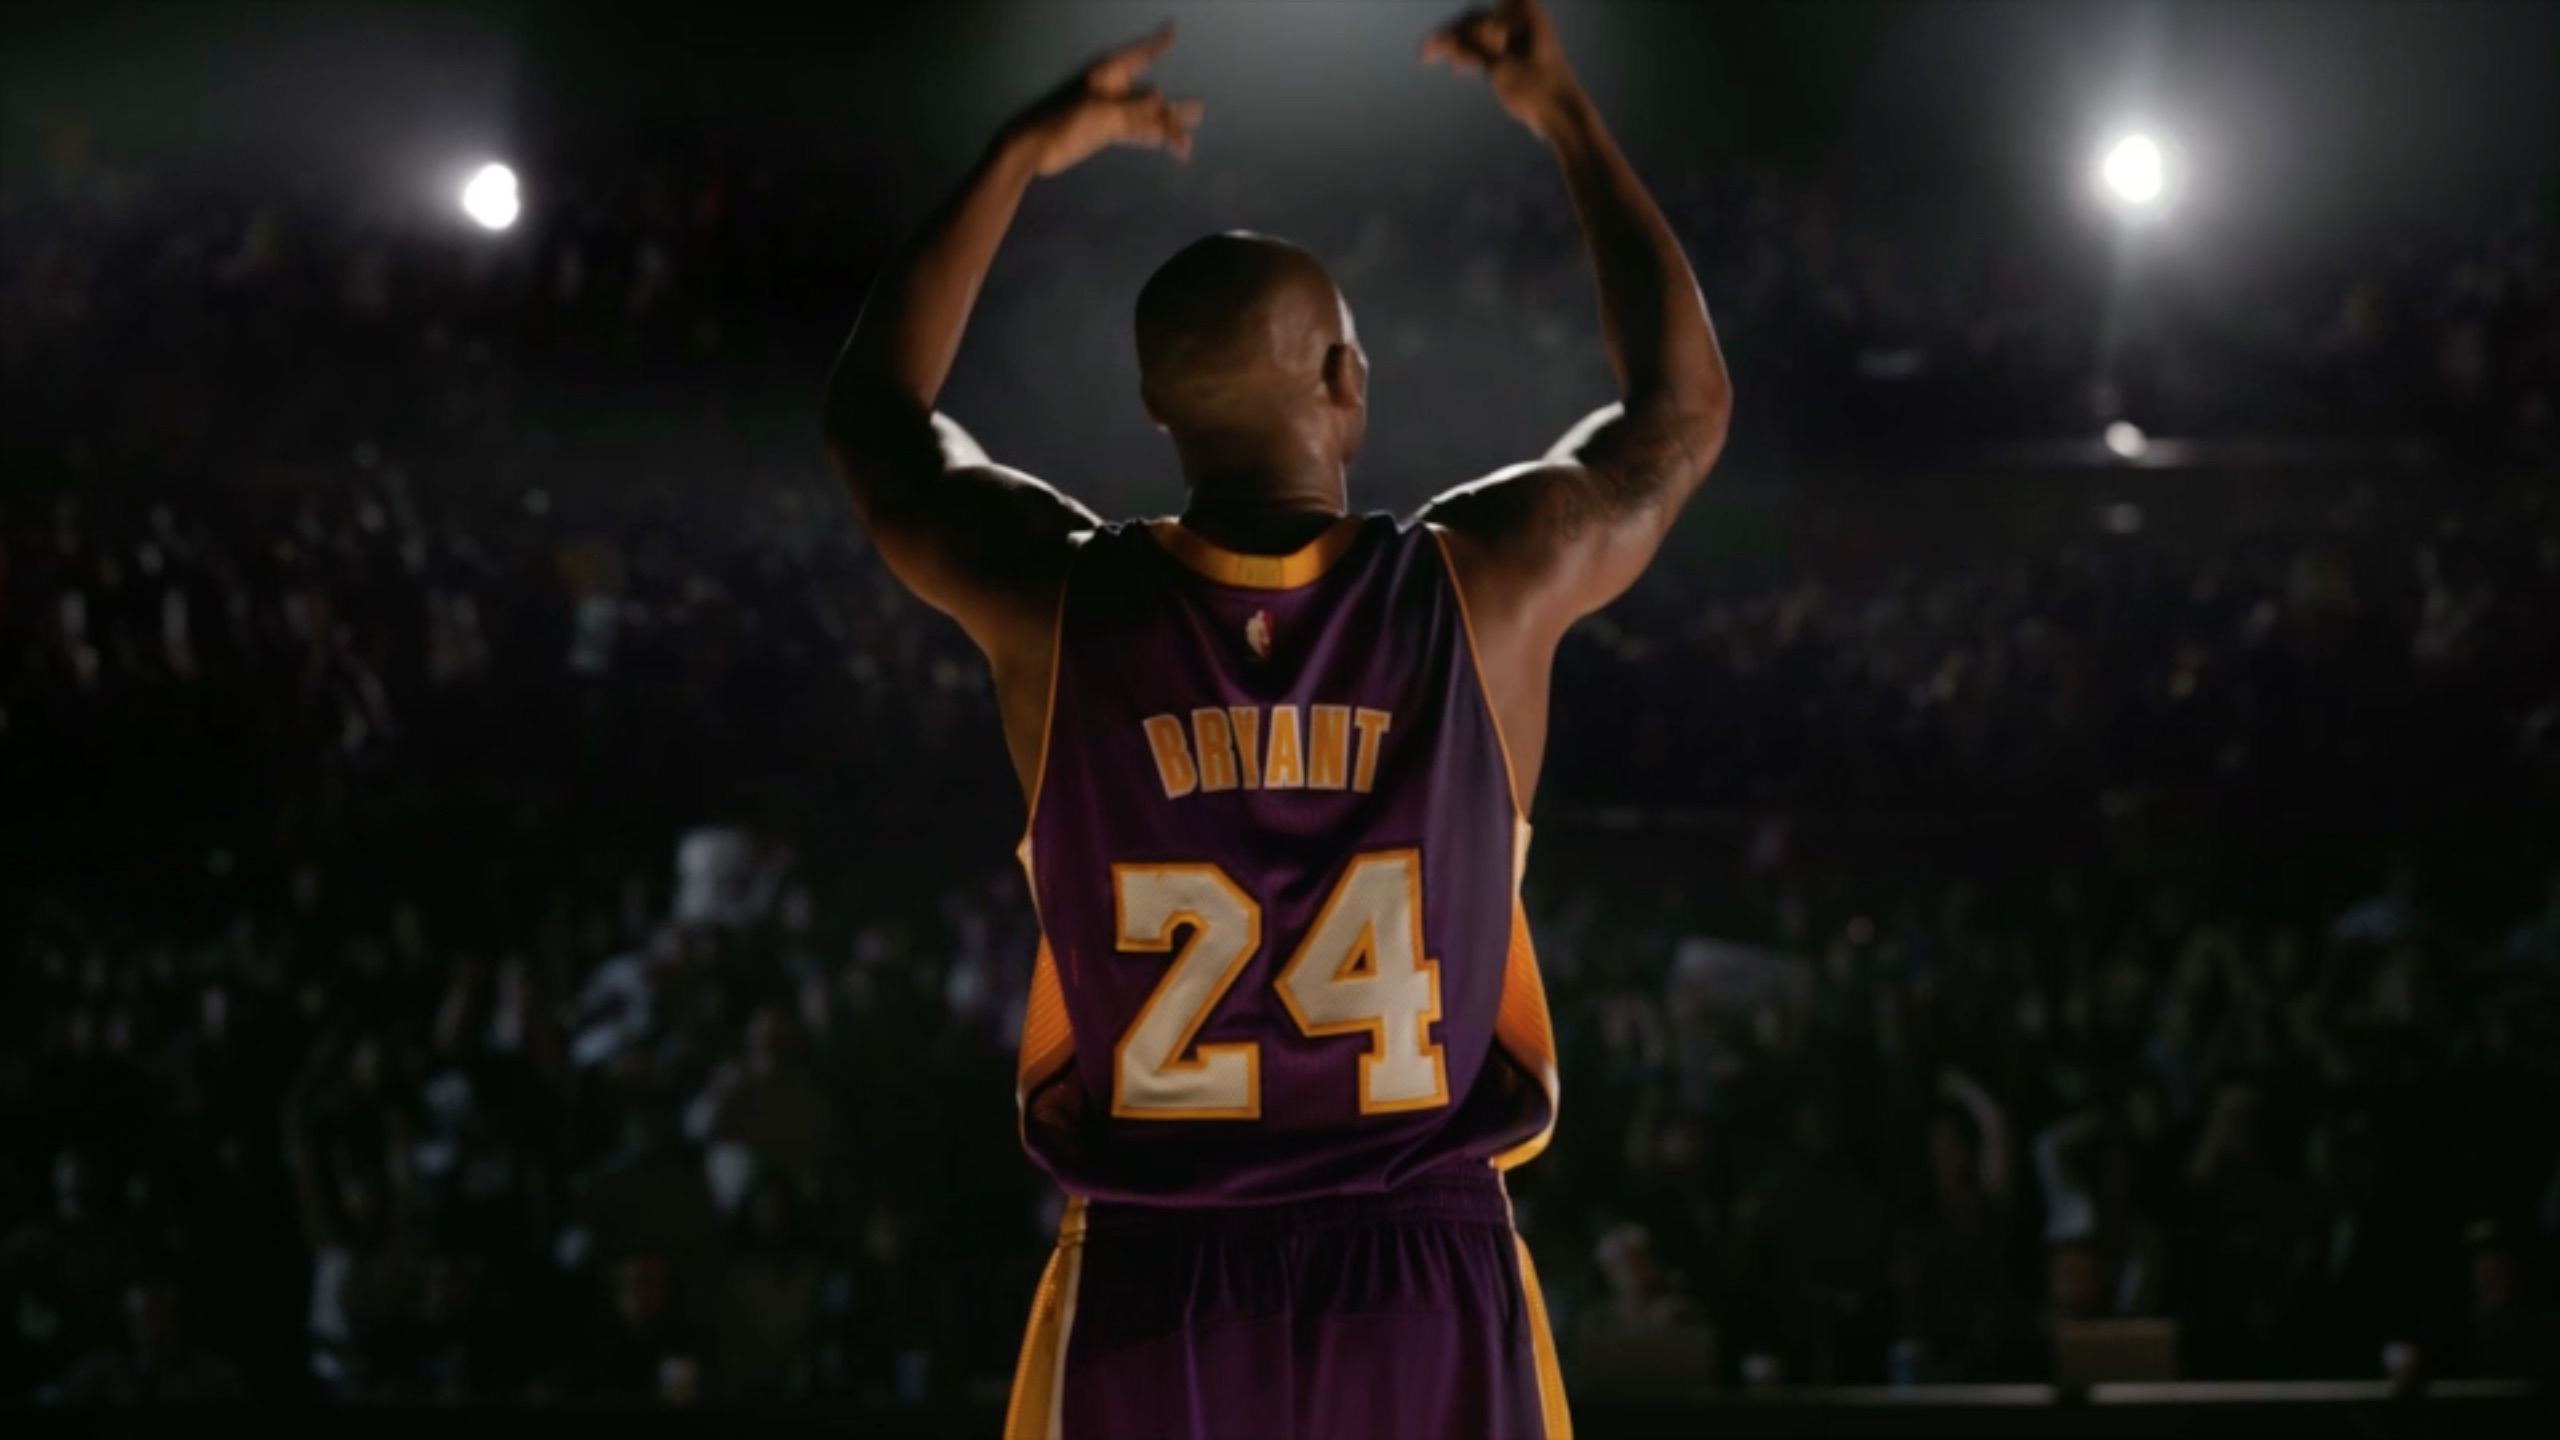 separation shoes f27d5 e9d74 Kobe Bryant Archives - Page 6 of 11 - WearTesters